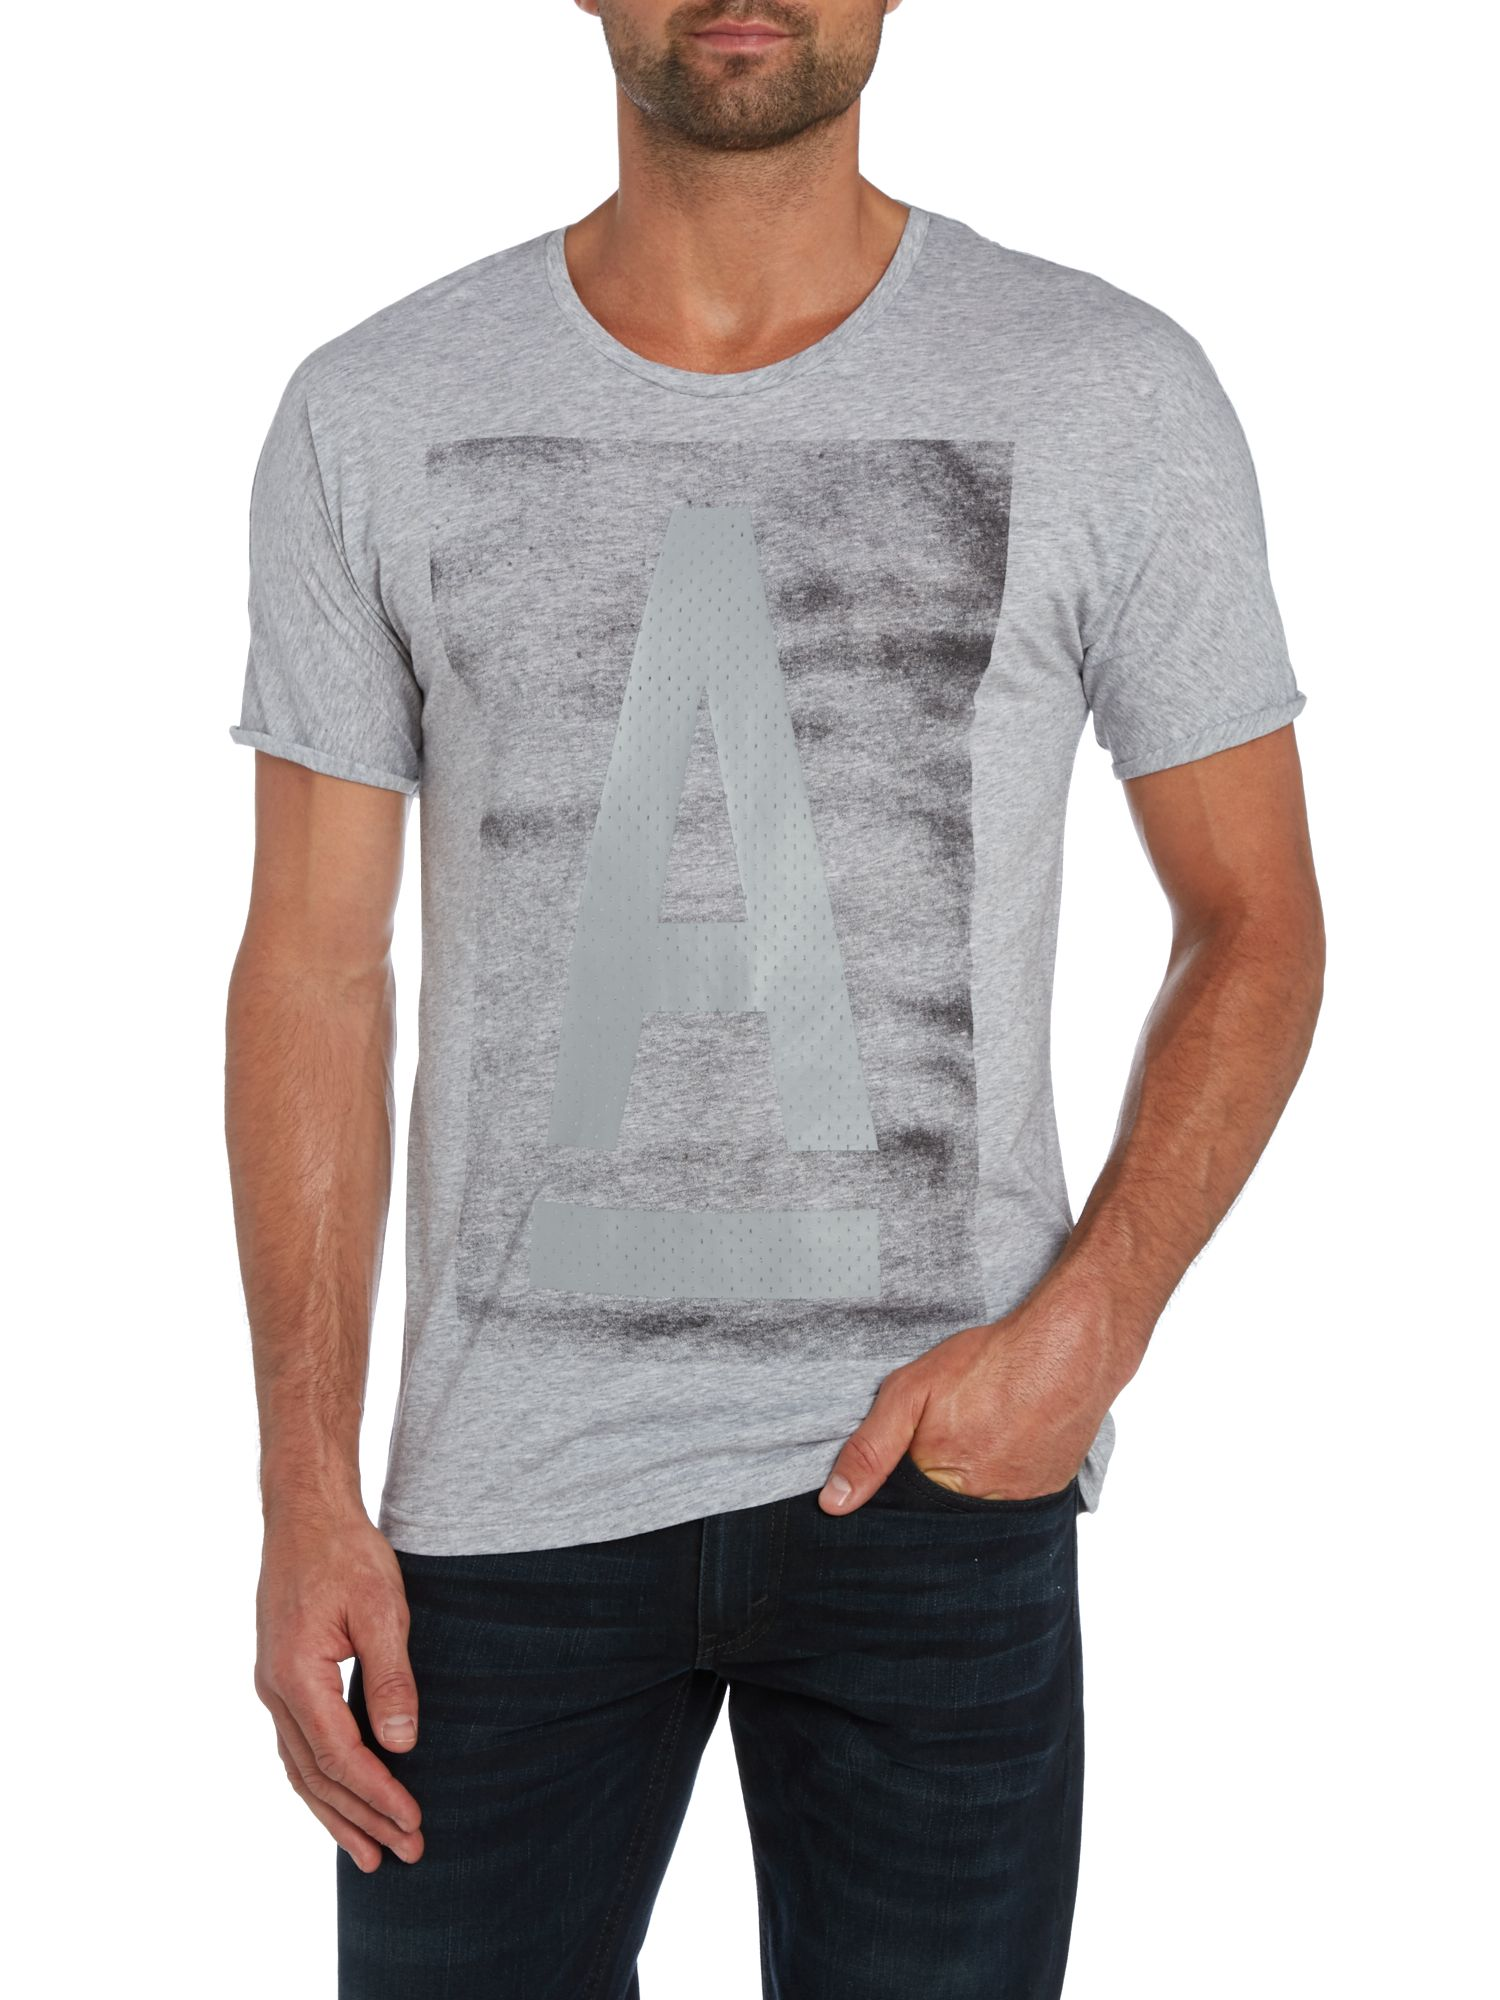 Raw graphic A print t shirt